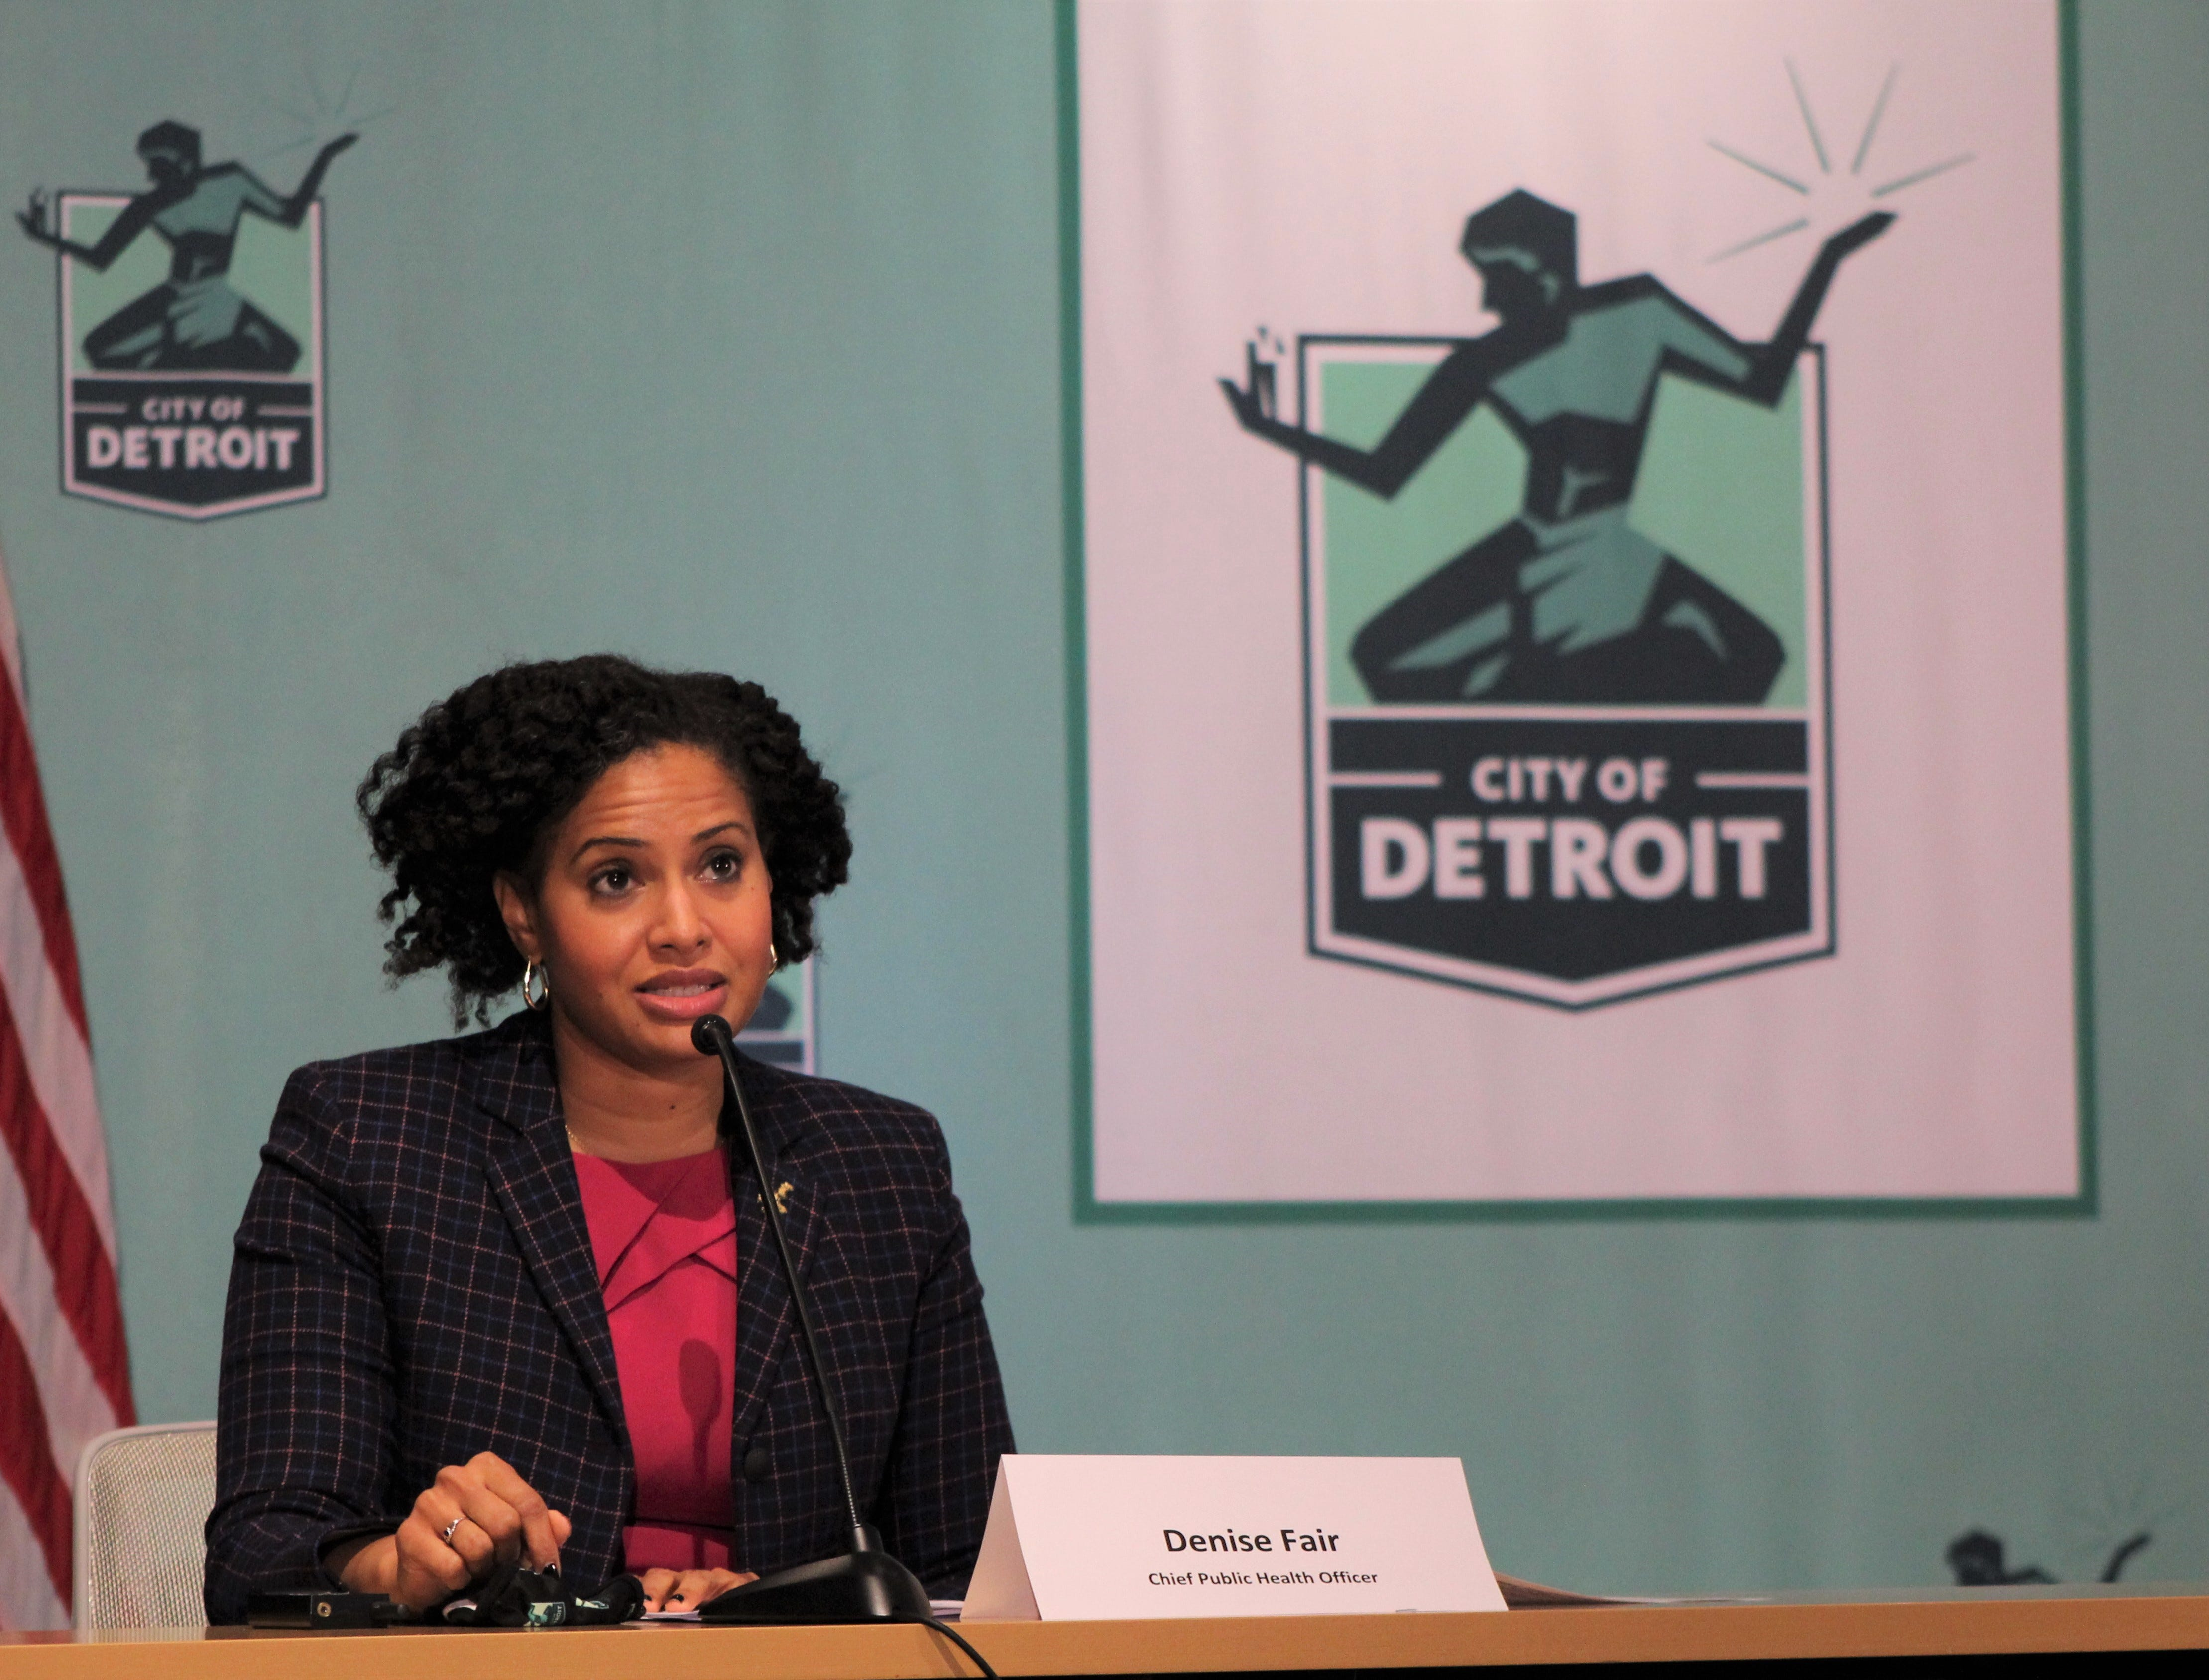 Detroit Chief Public Health Officer Denise Fair speaks at a press conference about new COVID-19 measures on Monday, November 16, 2020.